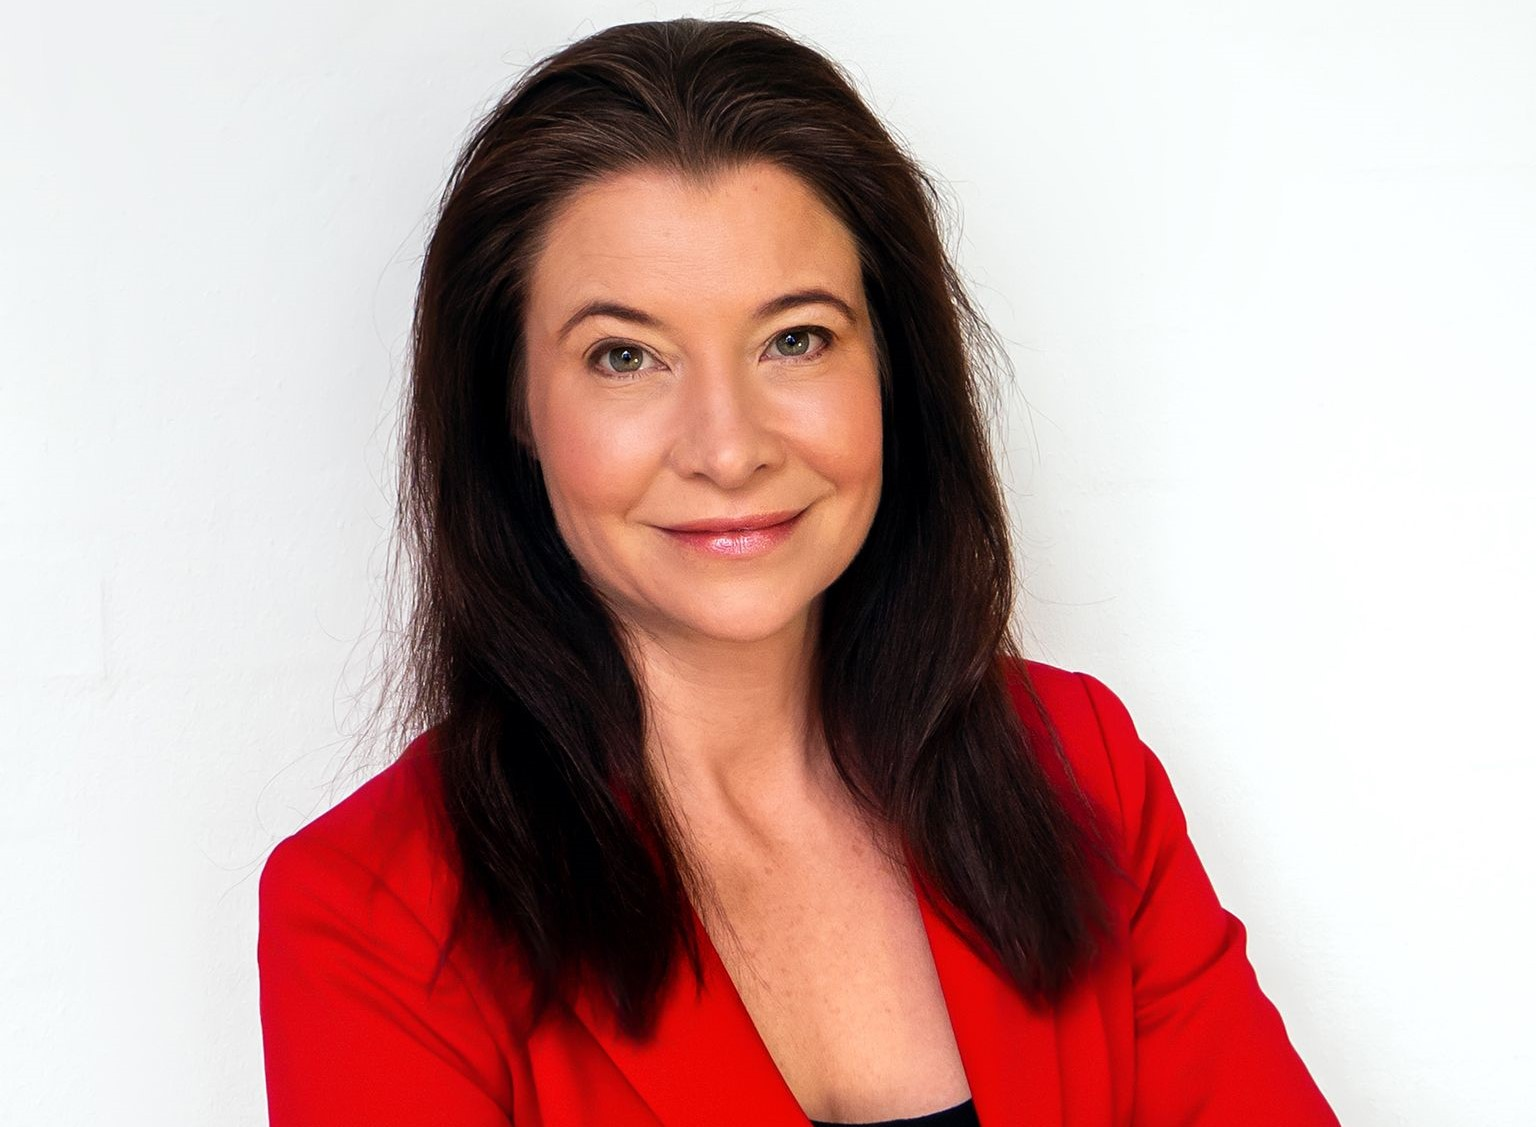 Energy storage firm Highview Power has appointed Sini Spets as vice-president of People and Strategy.